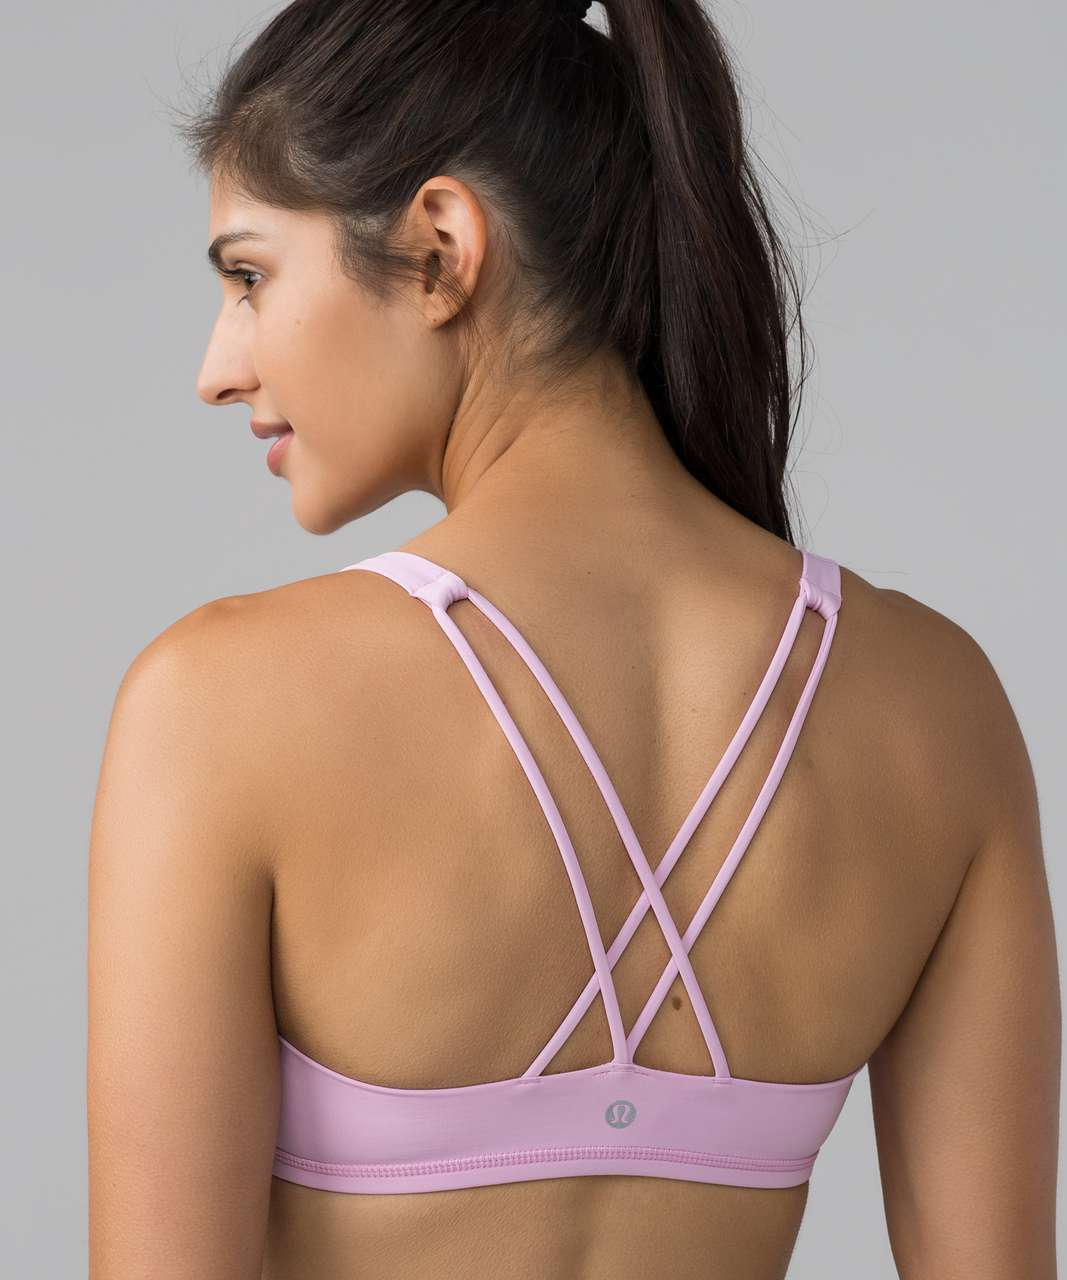 Lululemon Free To Be Bra - Cherry Blossom Pink